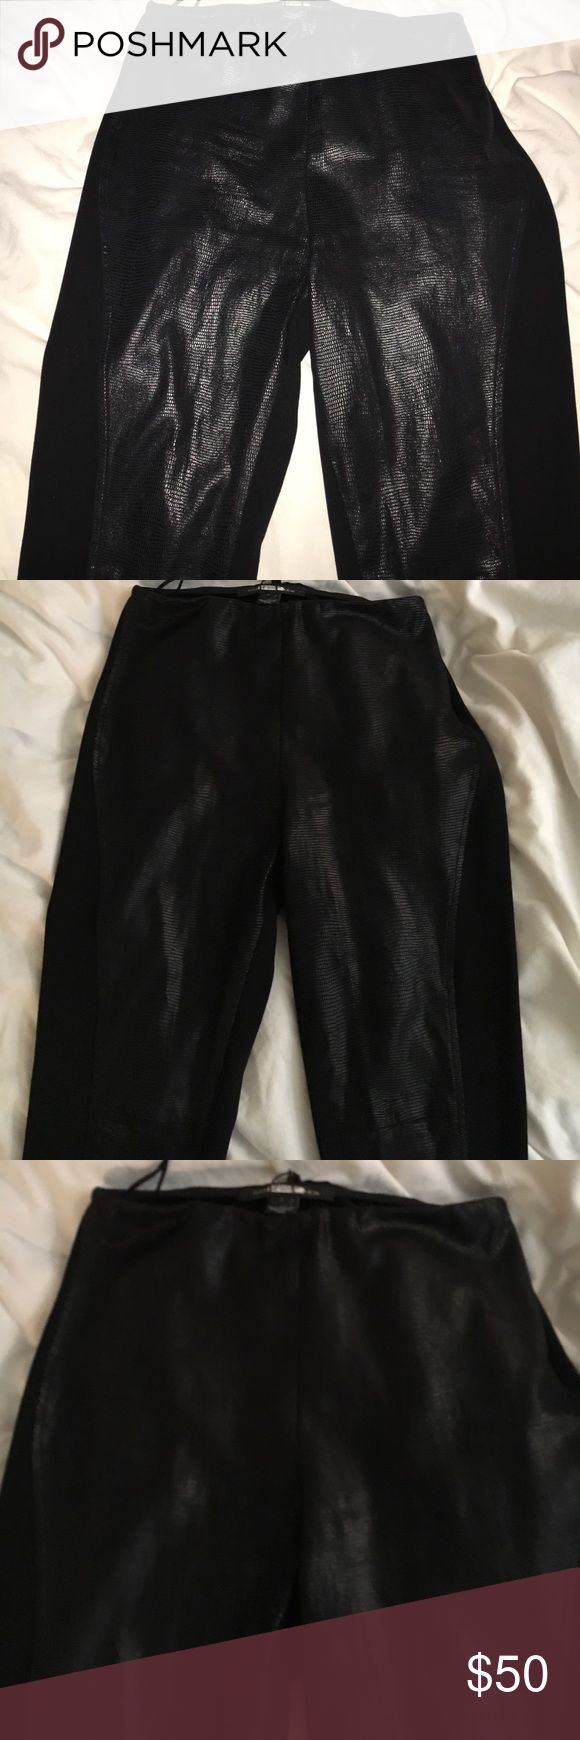 RALPH LAUREN BLK LABEL LEATHER WOOL LYCRA LEGGING Gorgeous embossed leather jeggin from Ralph Lauren's black label Boutique   Side zipper nice fitting throughout ! Retailed 350,,, worn one time and dry cleaned   Label has sticky tab on label from cleaners Size 2. GUARANTEED AUTHENTIC AUTHENTIC!! Nice trousers ,, skinny leg,, more of a tight legging style Ralph Lauren Black Label Pants Skinny